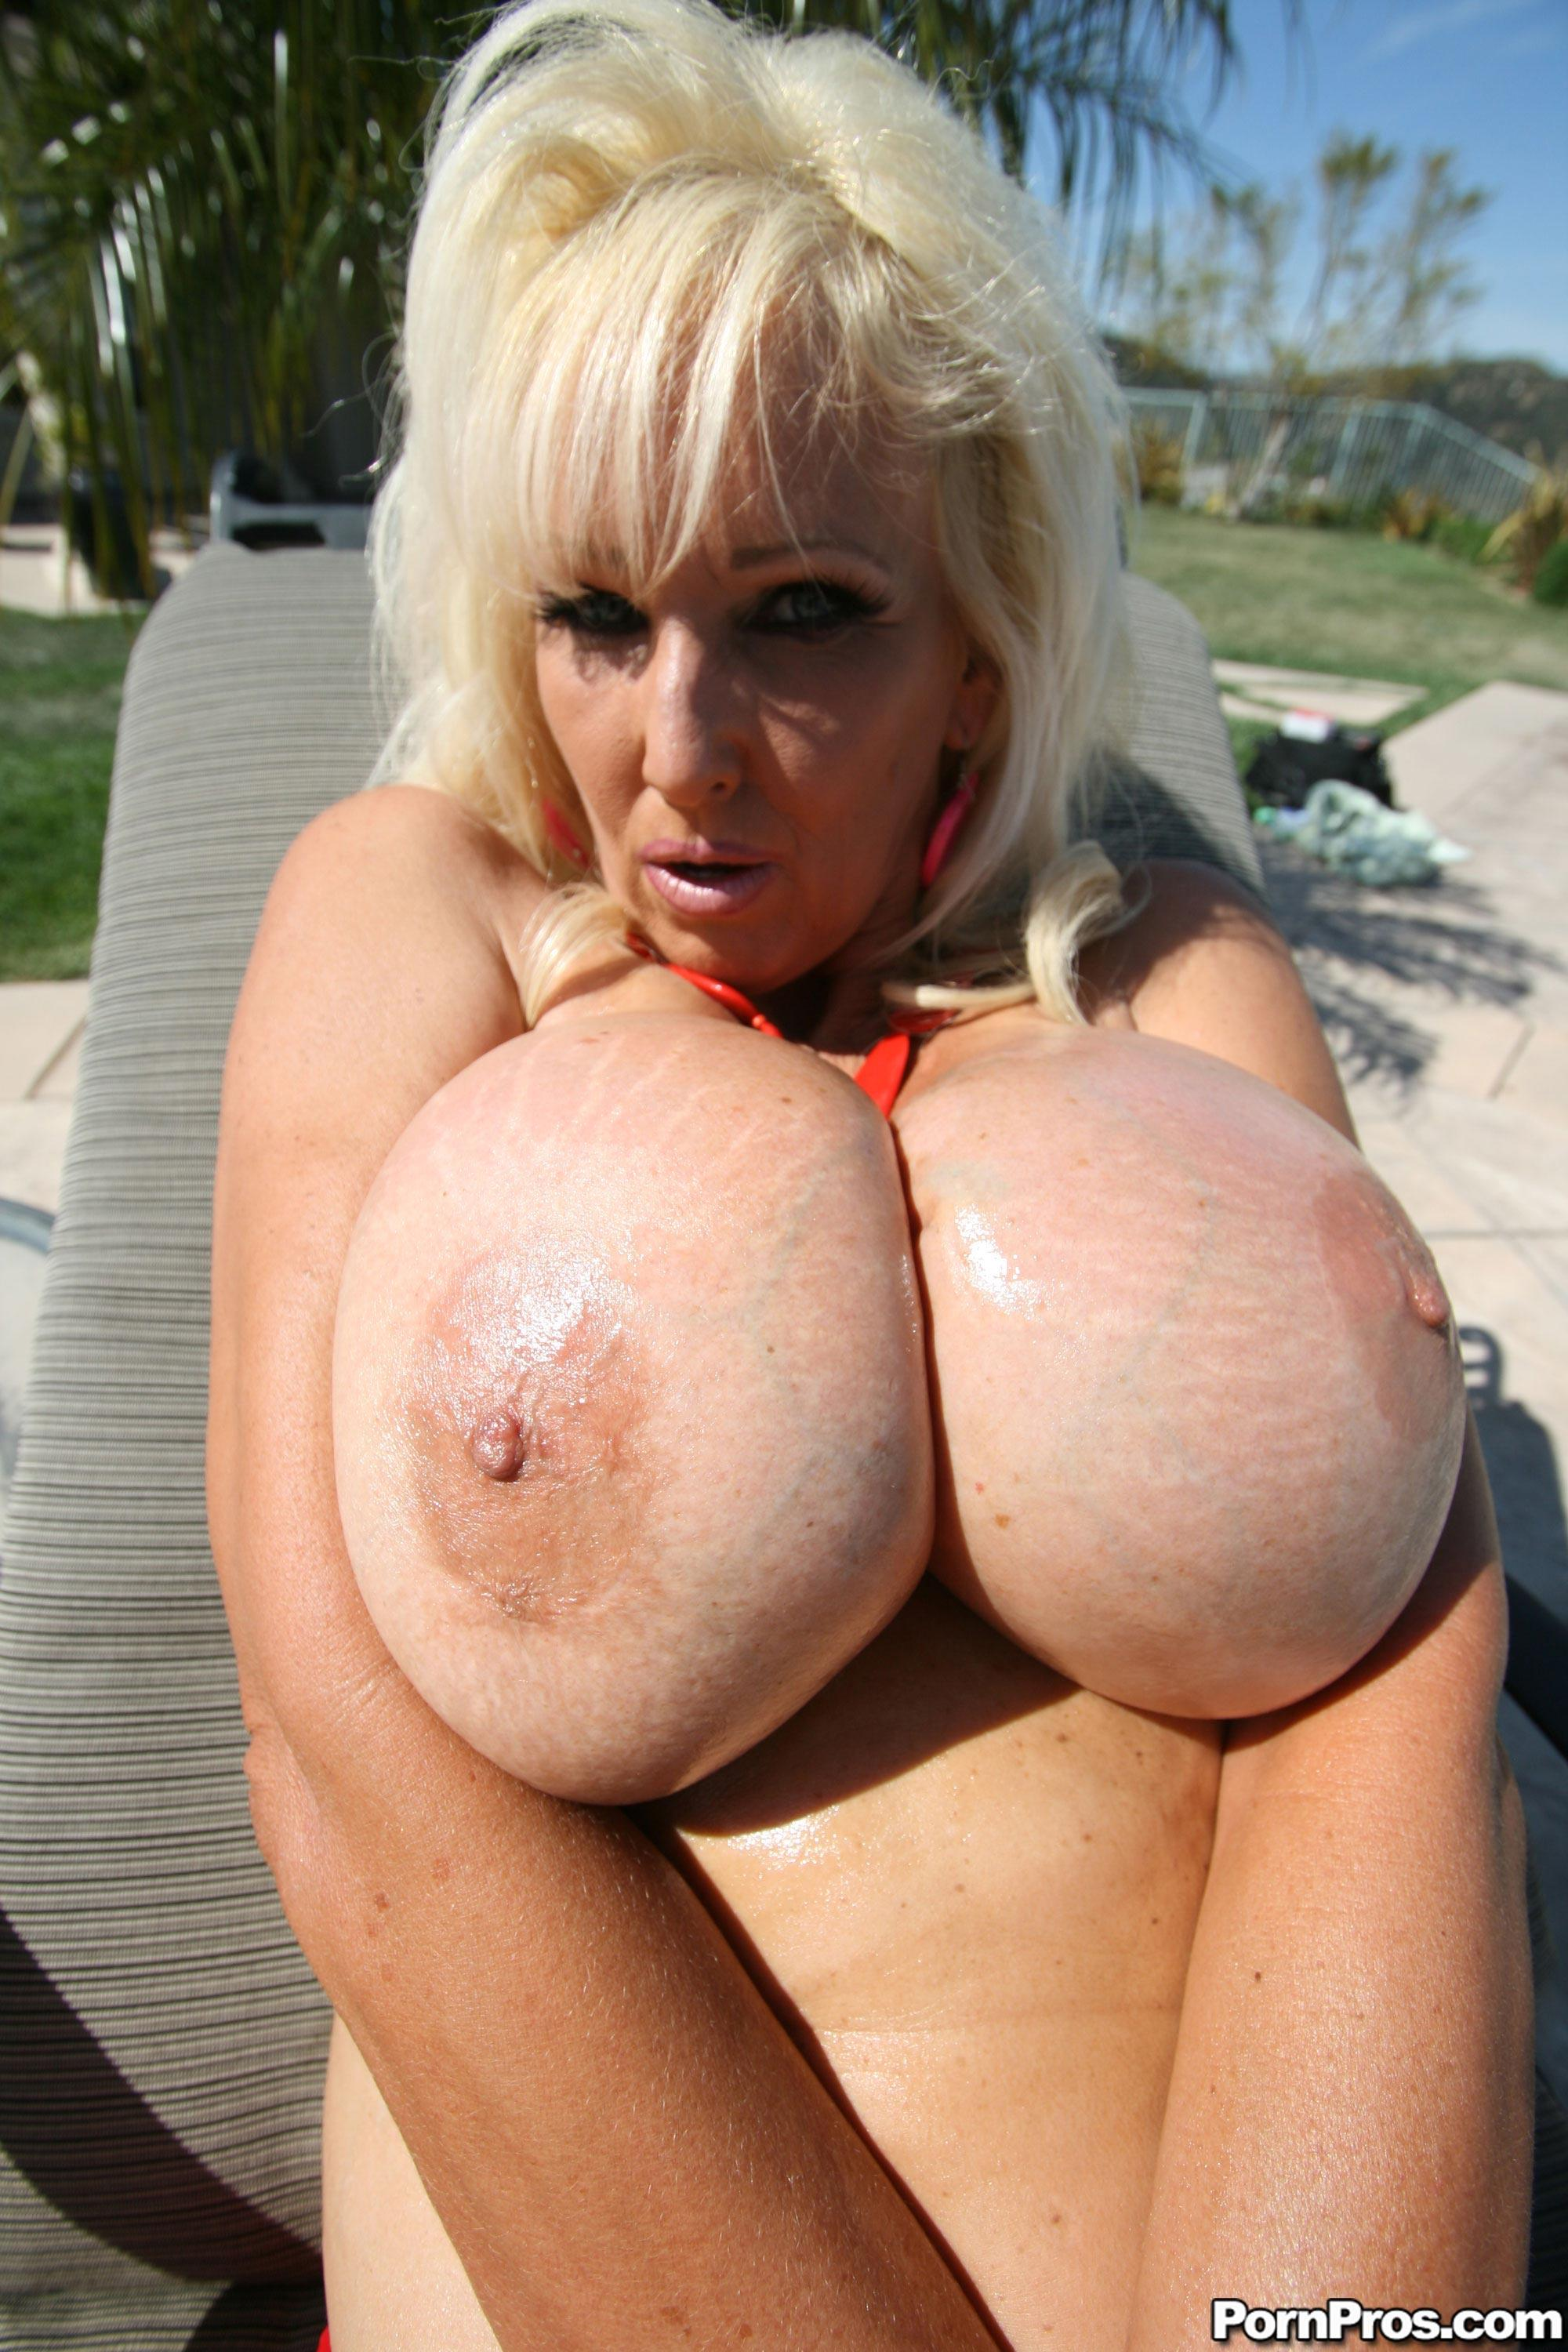 Big tit amature mature got fucking ass